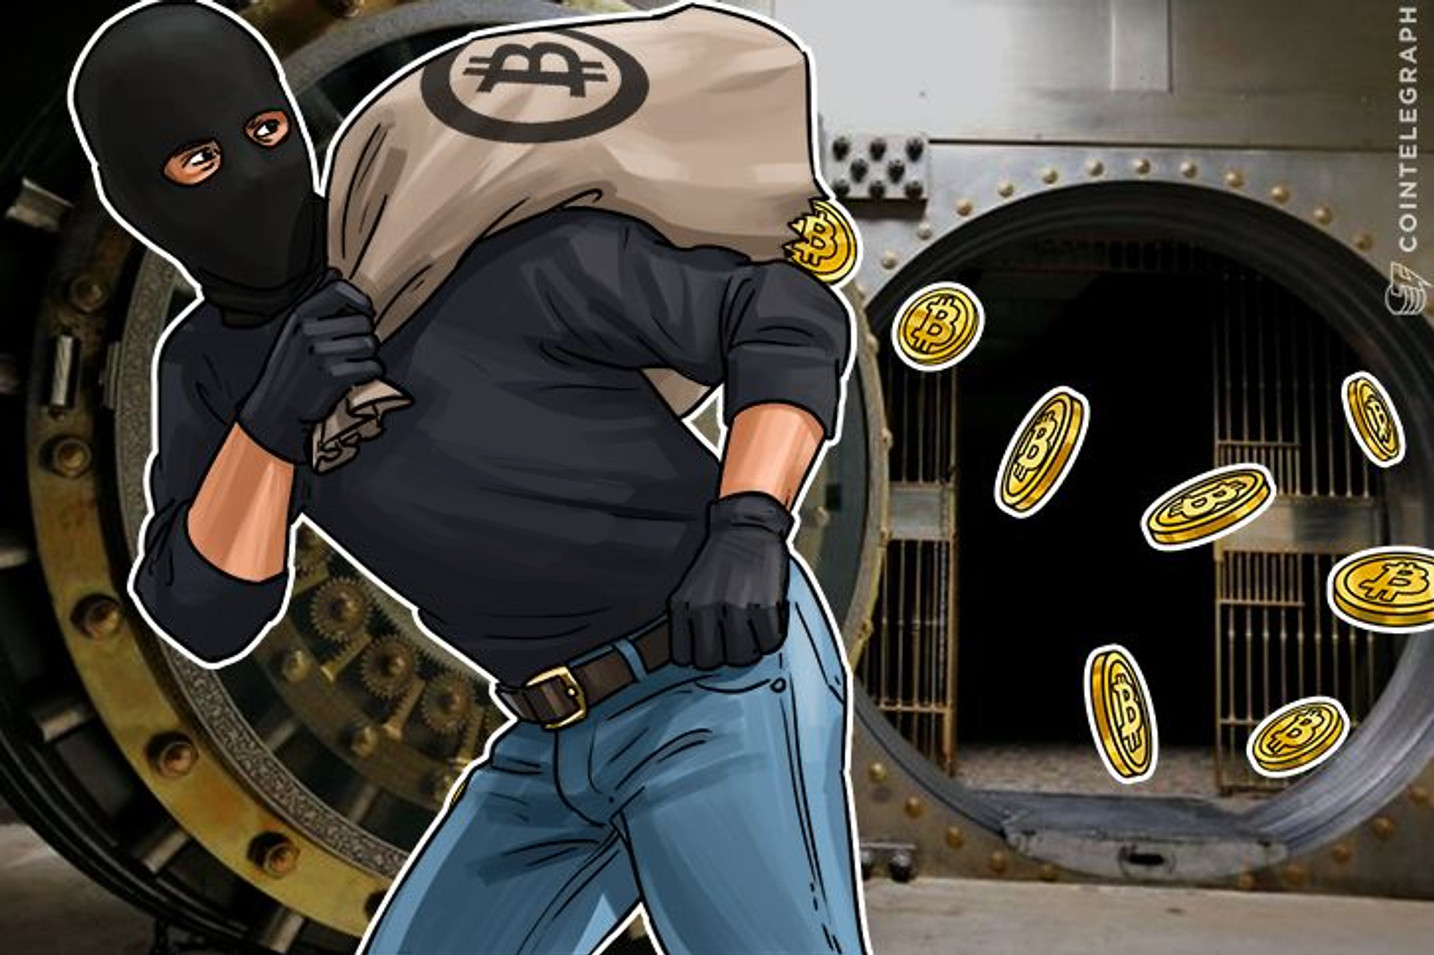 Korean Bitcoin Exchange Bithumb Keeps Quiet On Lost Funds, Compensates Hacked Users